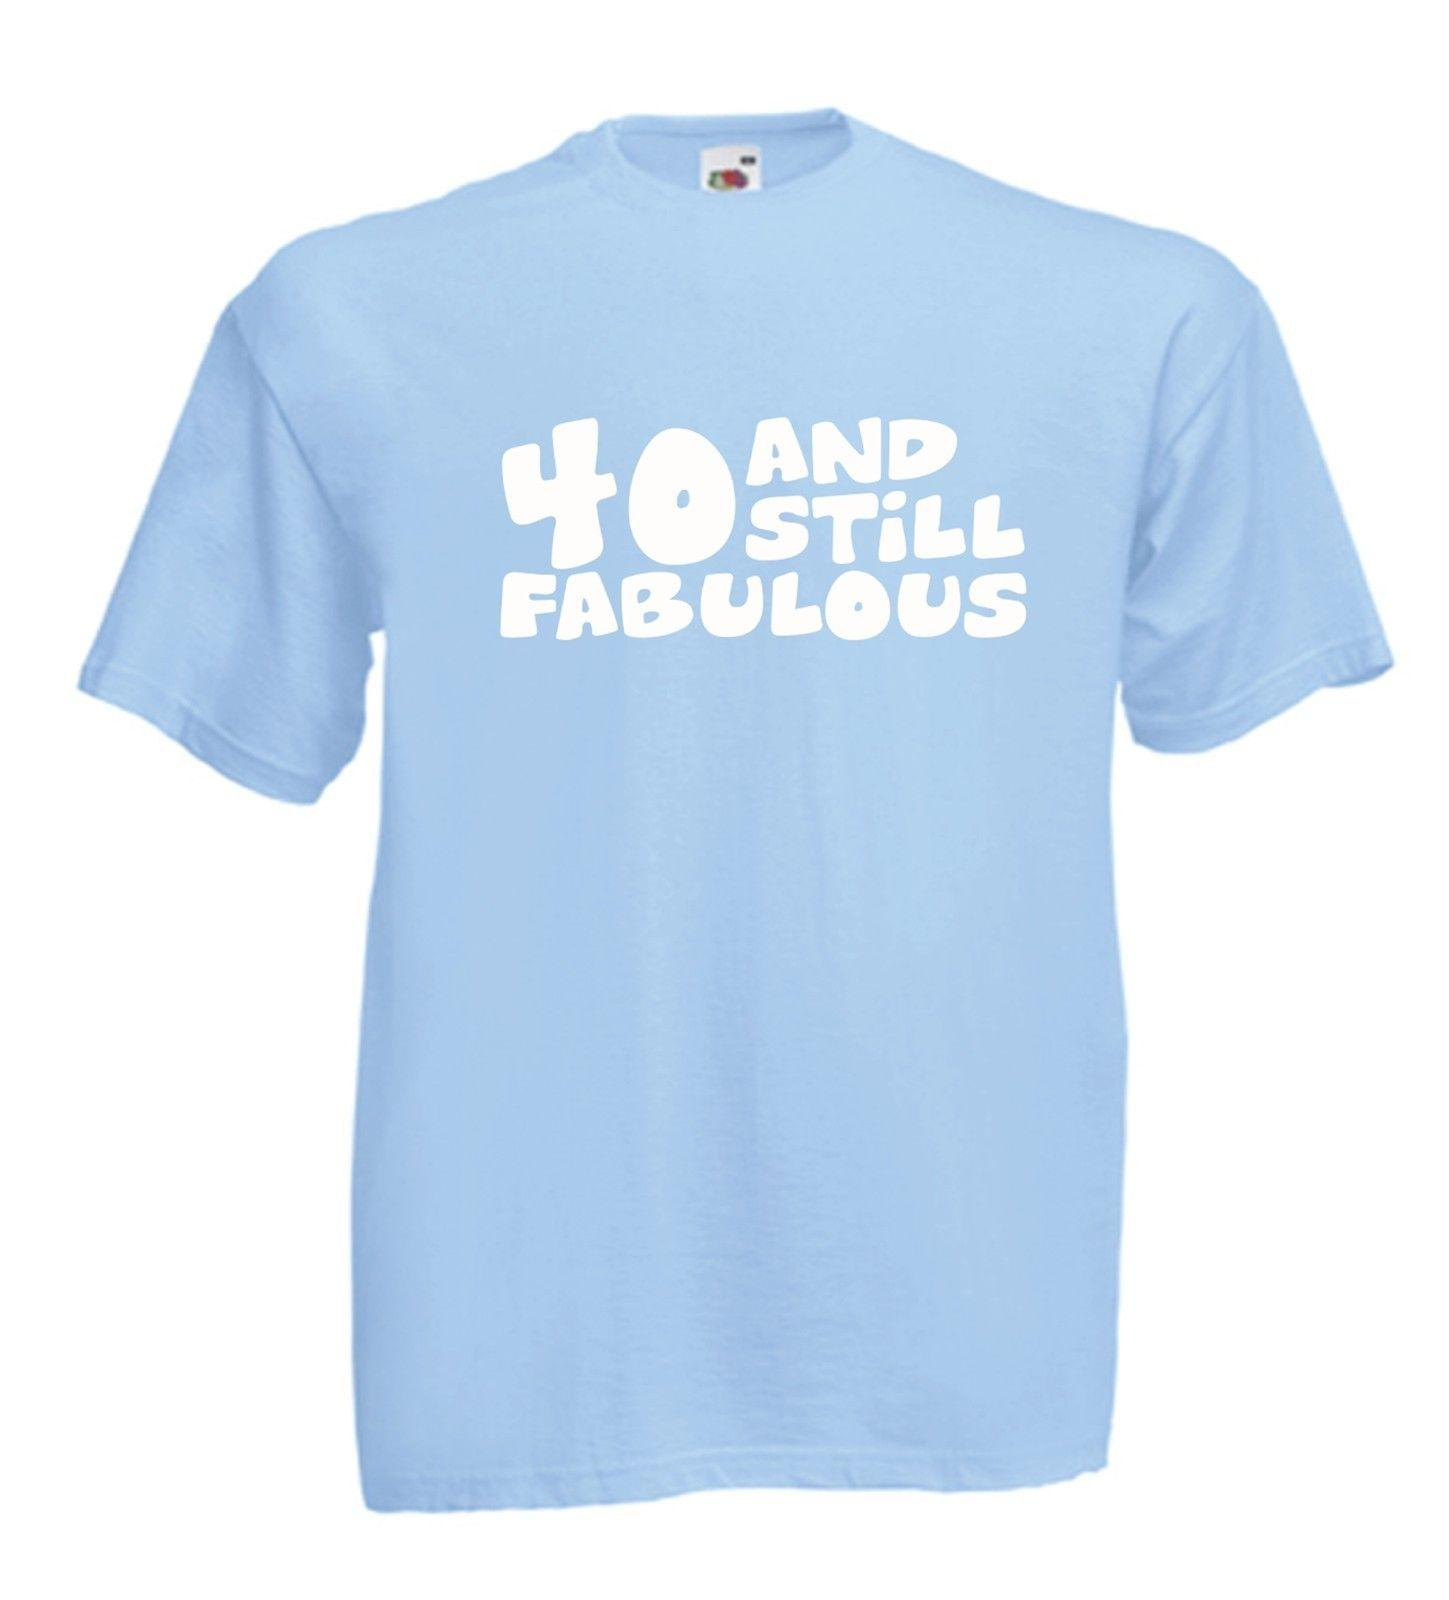 40 AND FABULOUS Funny Tee 40th Xmas Birthday Gift Ideas Mens Womens T SHIRT TOP Unisex Casual Crazy Shirts Novelty Shirt From